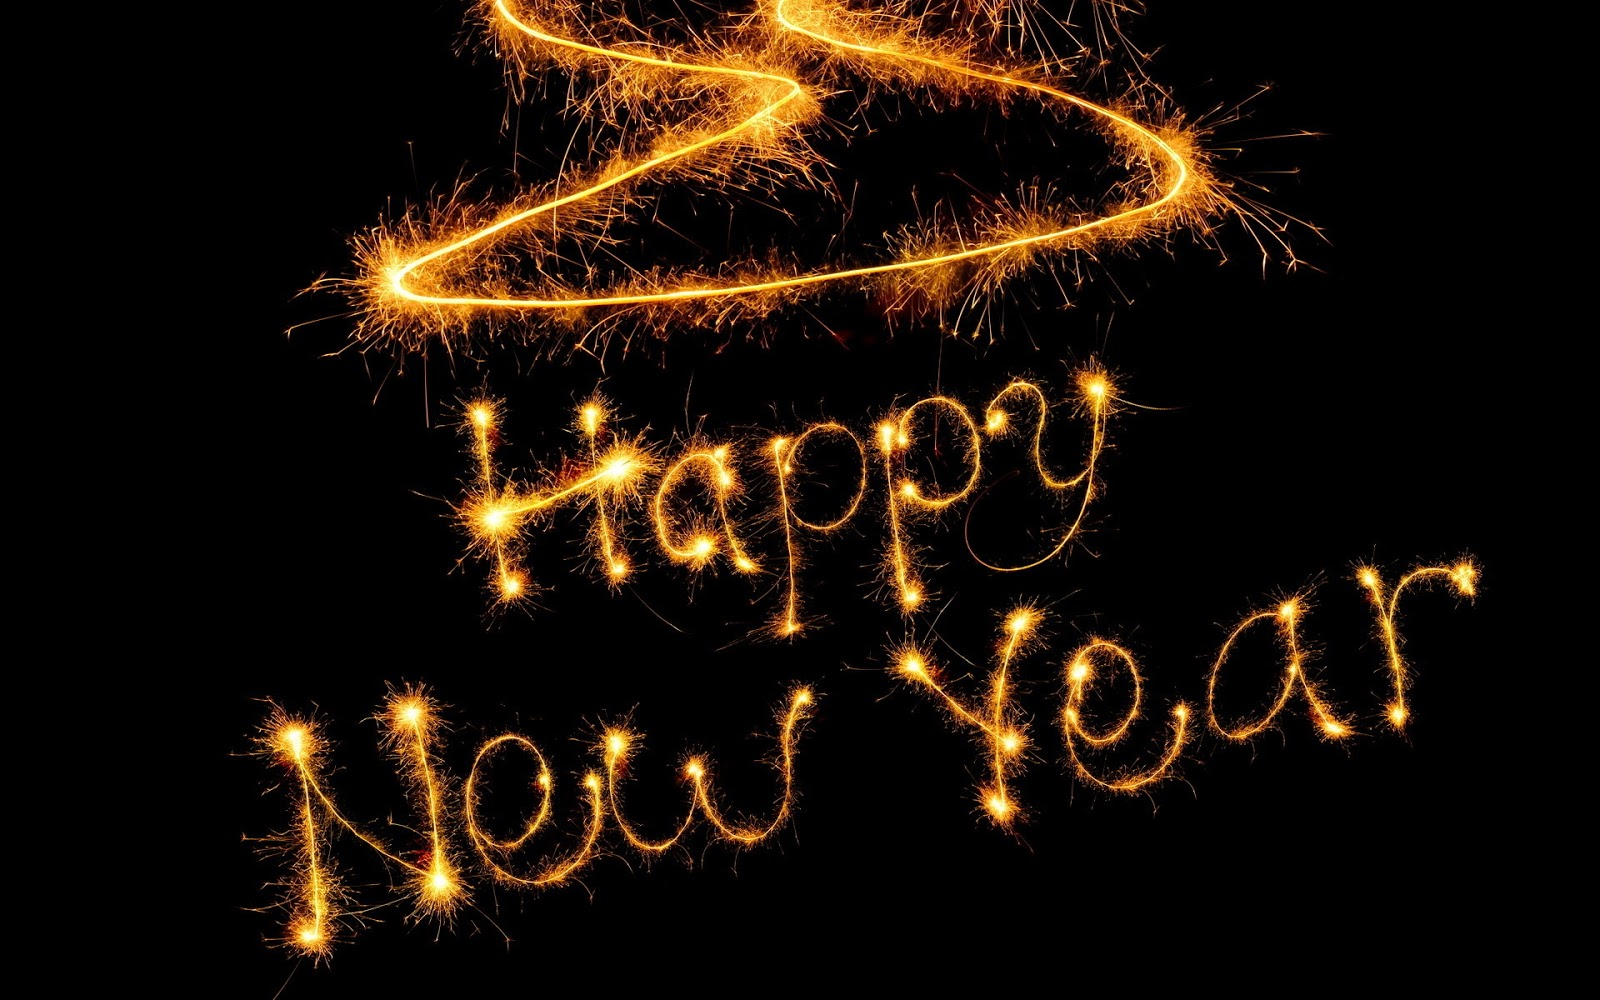 http://1.bp.blogspot.com/-WYK0Nv-iocM/UNF08EcVAJI/AAAAAAAAAr8/x-_HZ4dz8Yg/s1600/happy_new_year_2013-wide.jpg